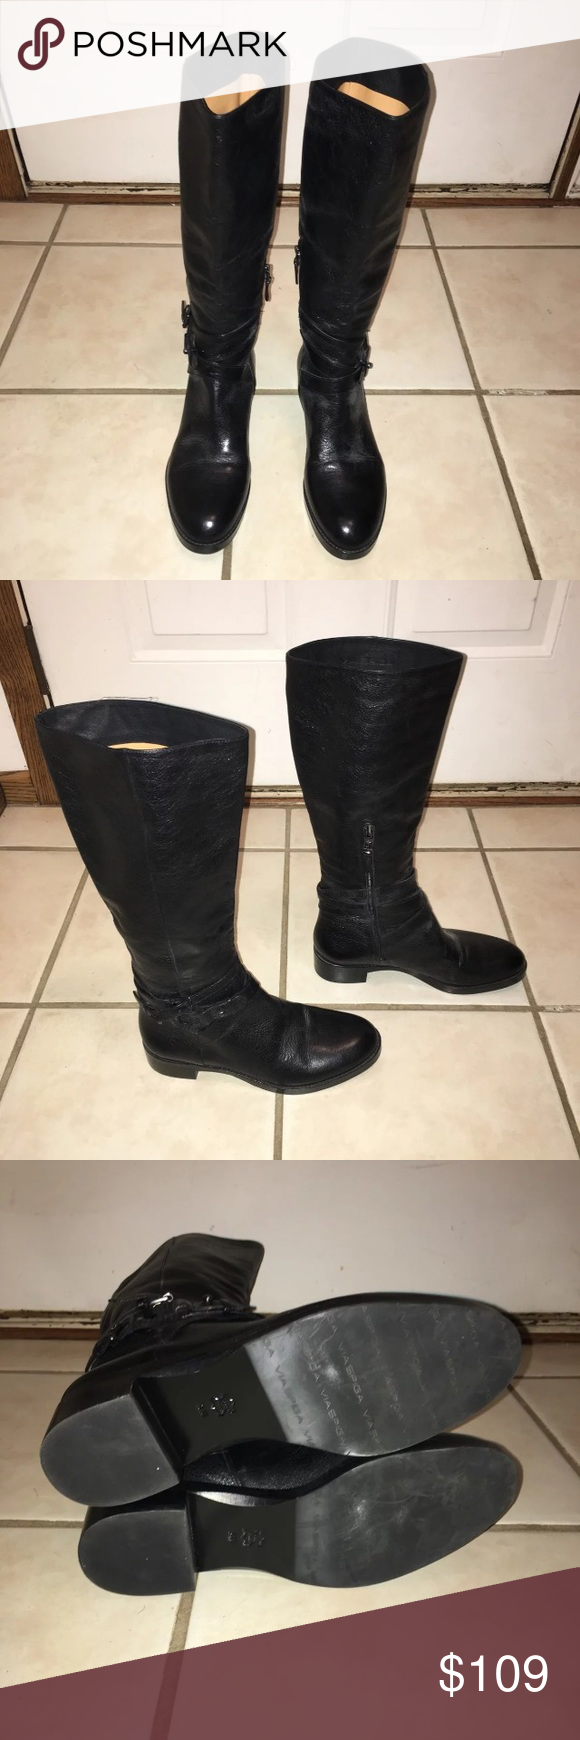 145078b83b5 Via Spiga Belted Women's Riding Boots 9 Up for sale is a pair of ...